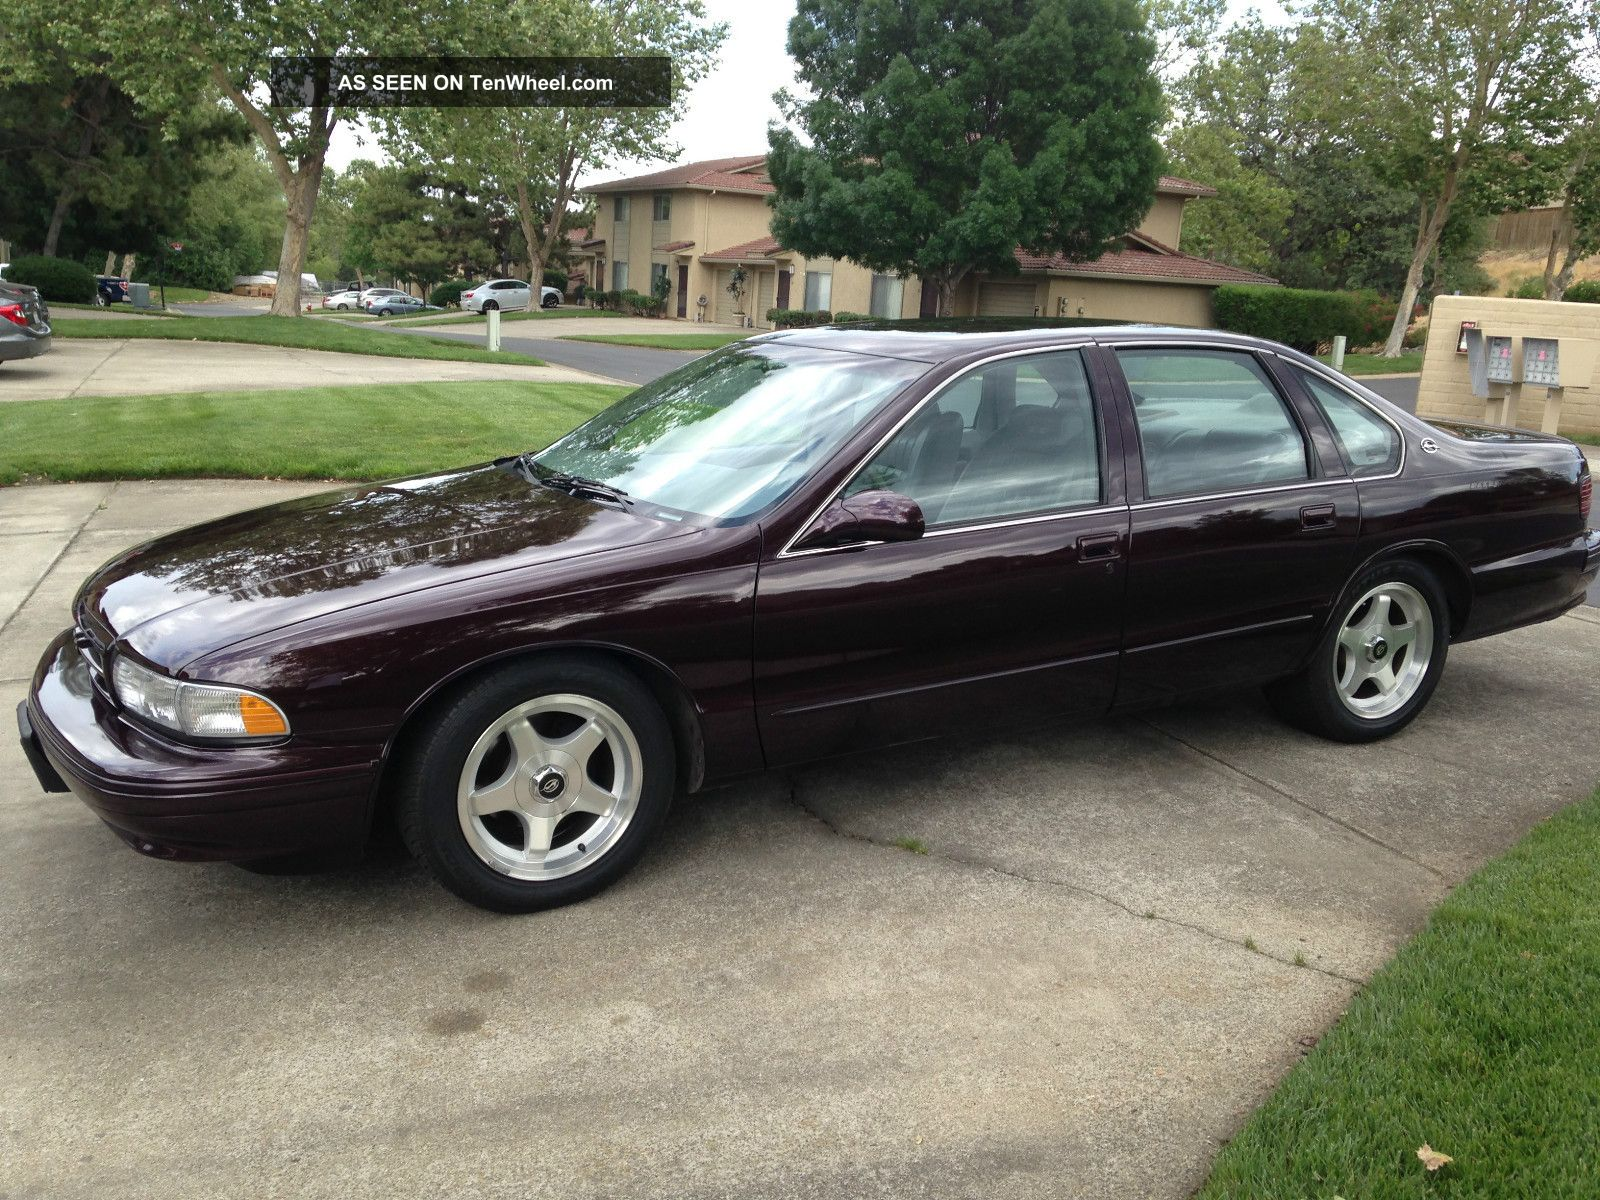 1996 Chevy Impala Ss Impala photo